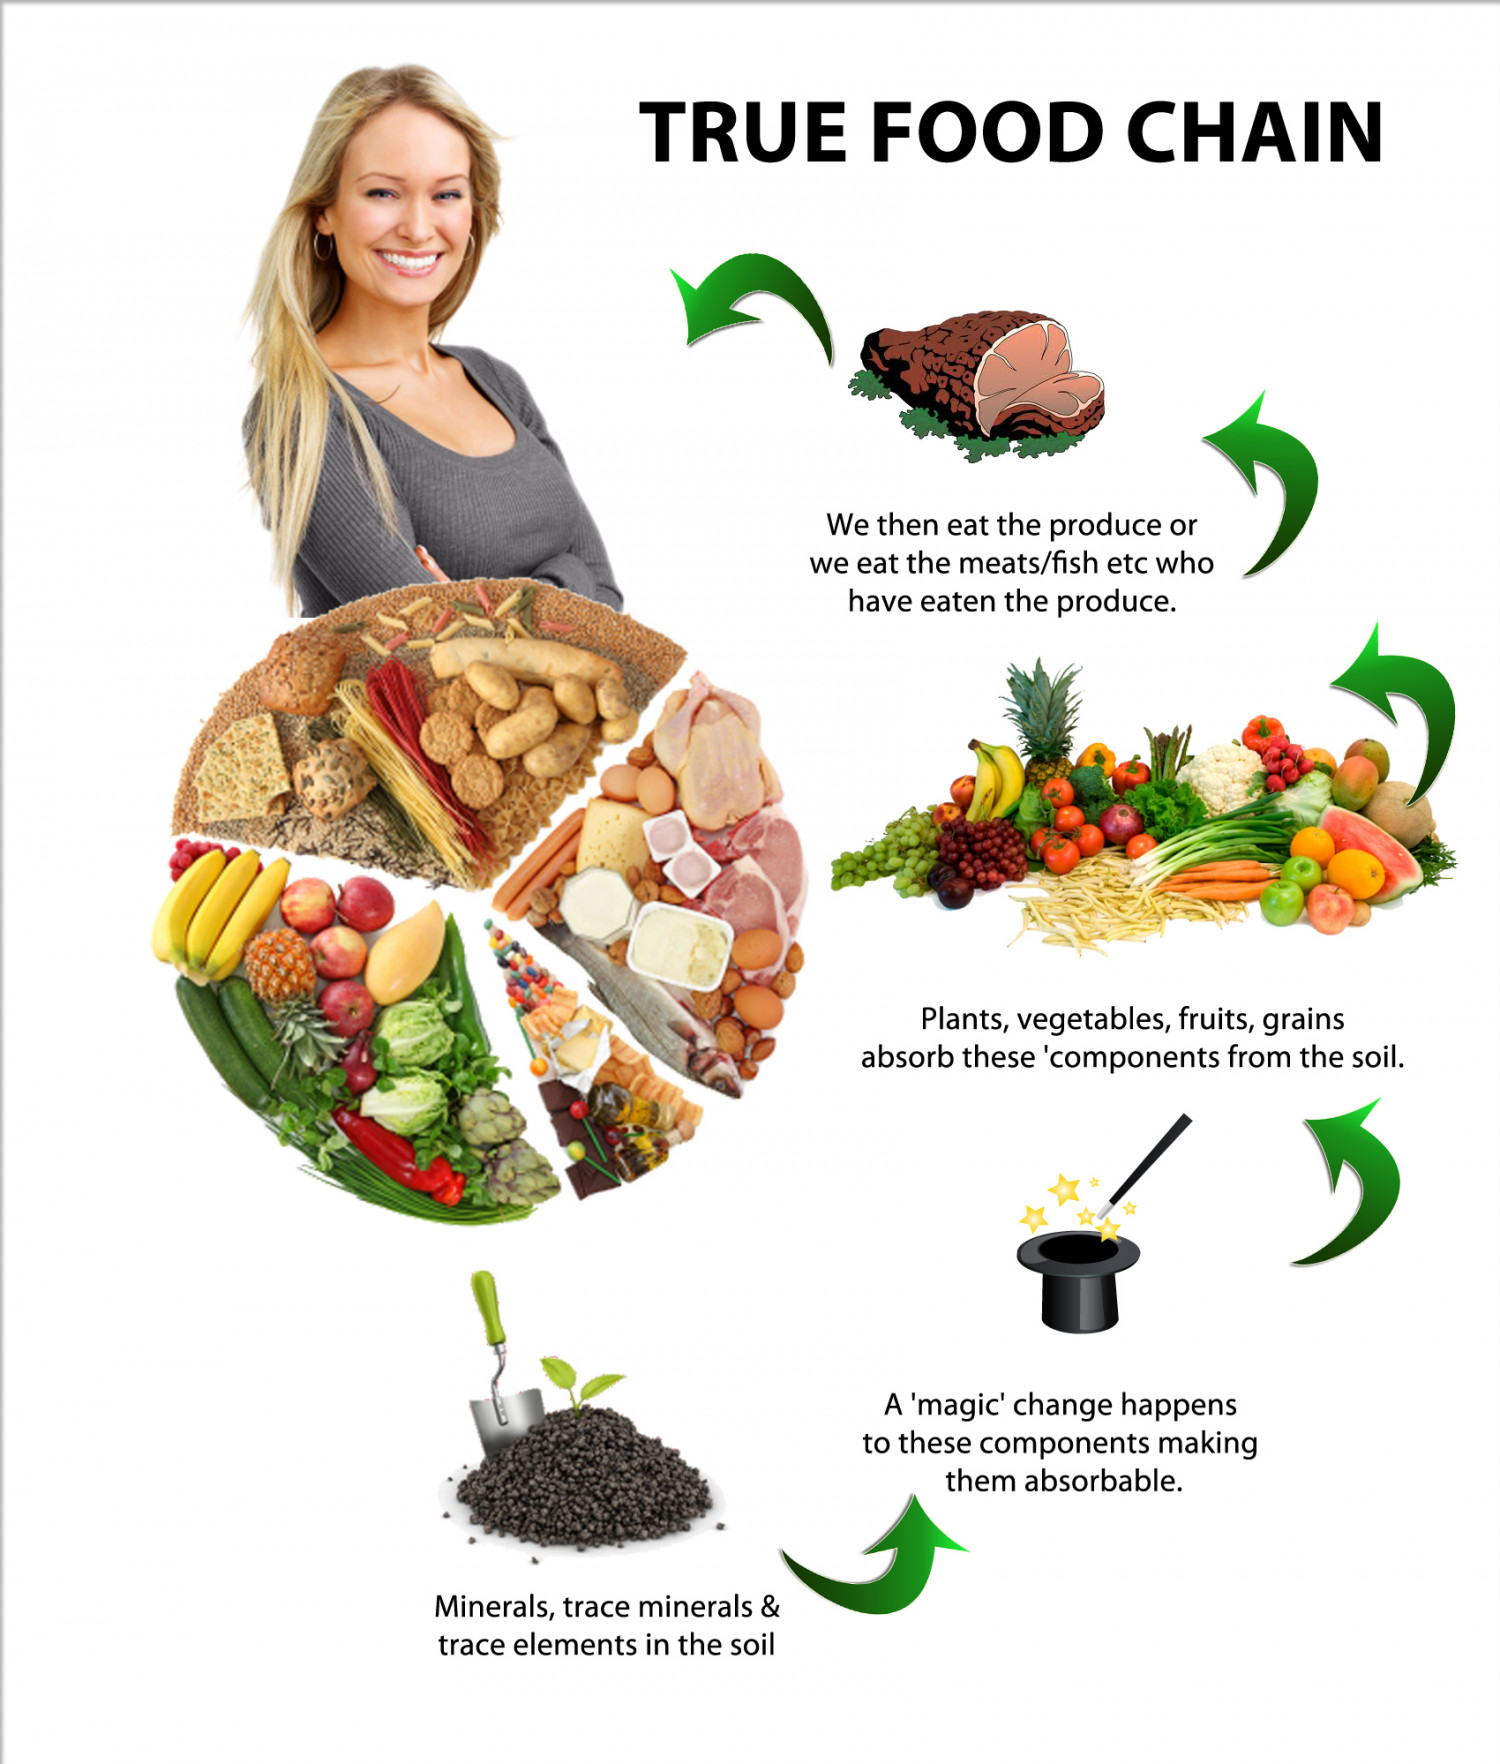 The True Food Chain Infographic